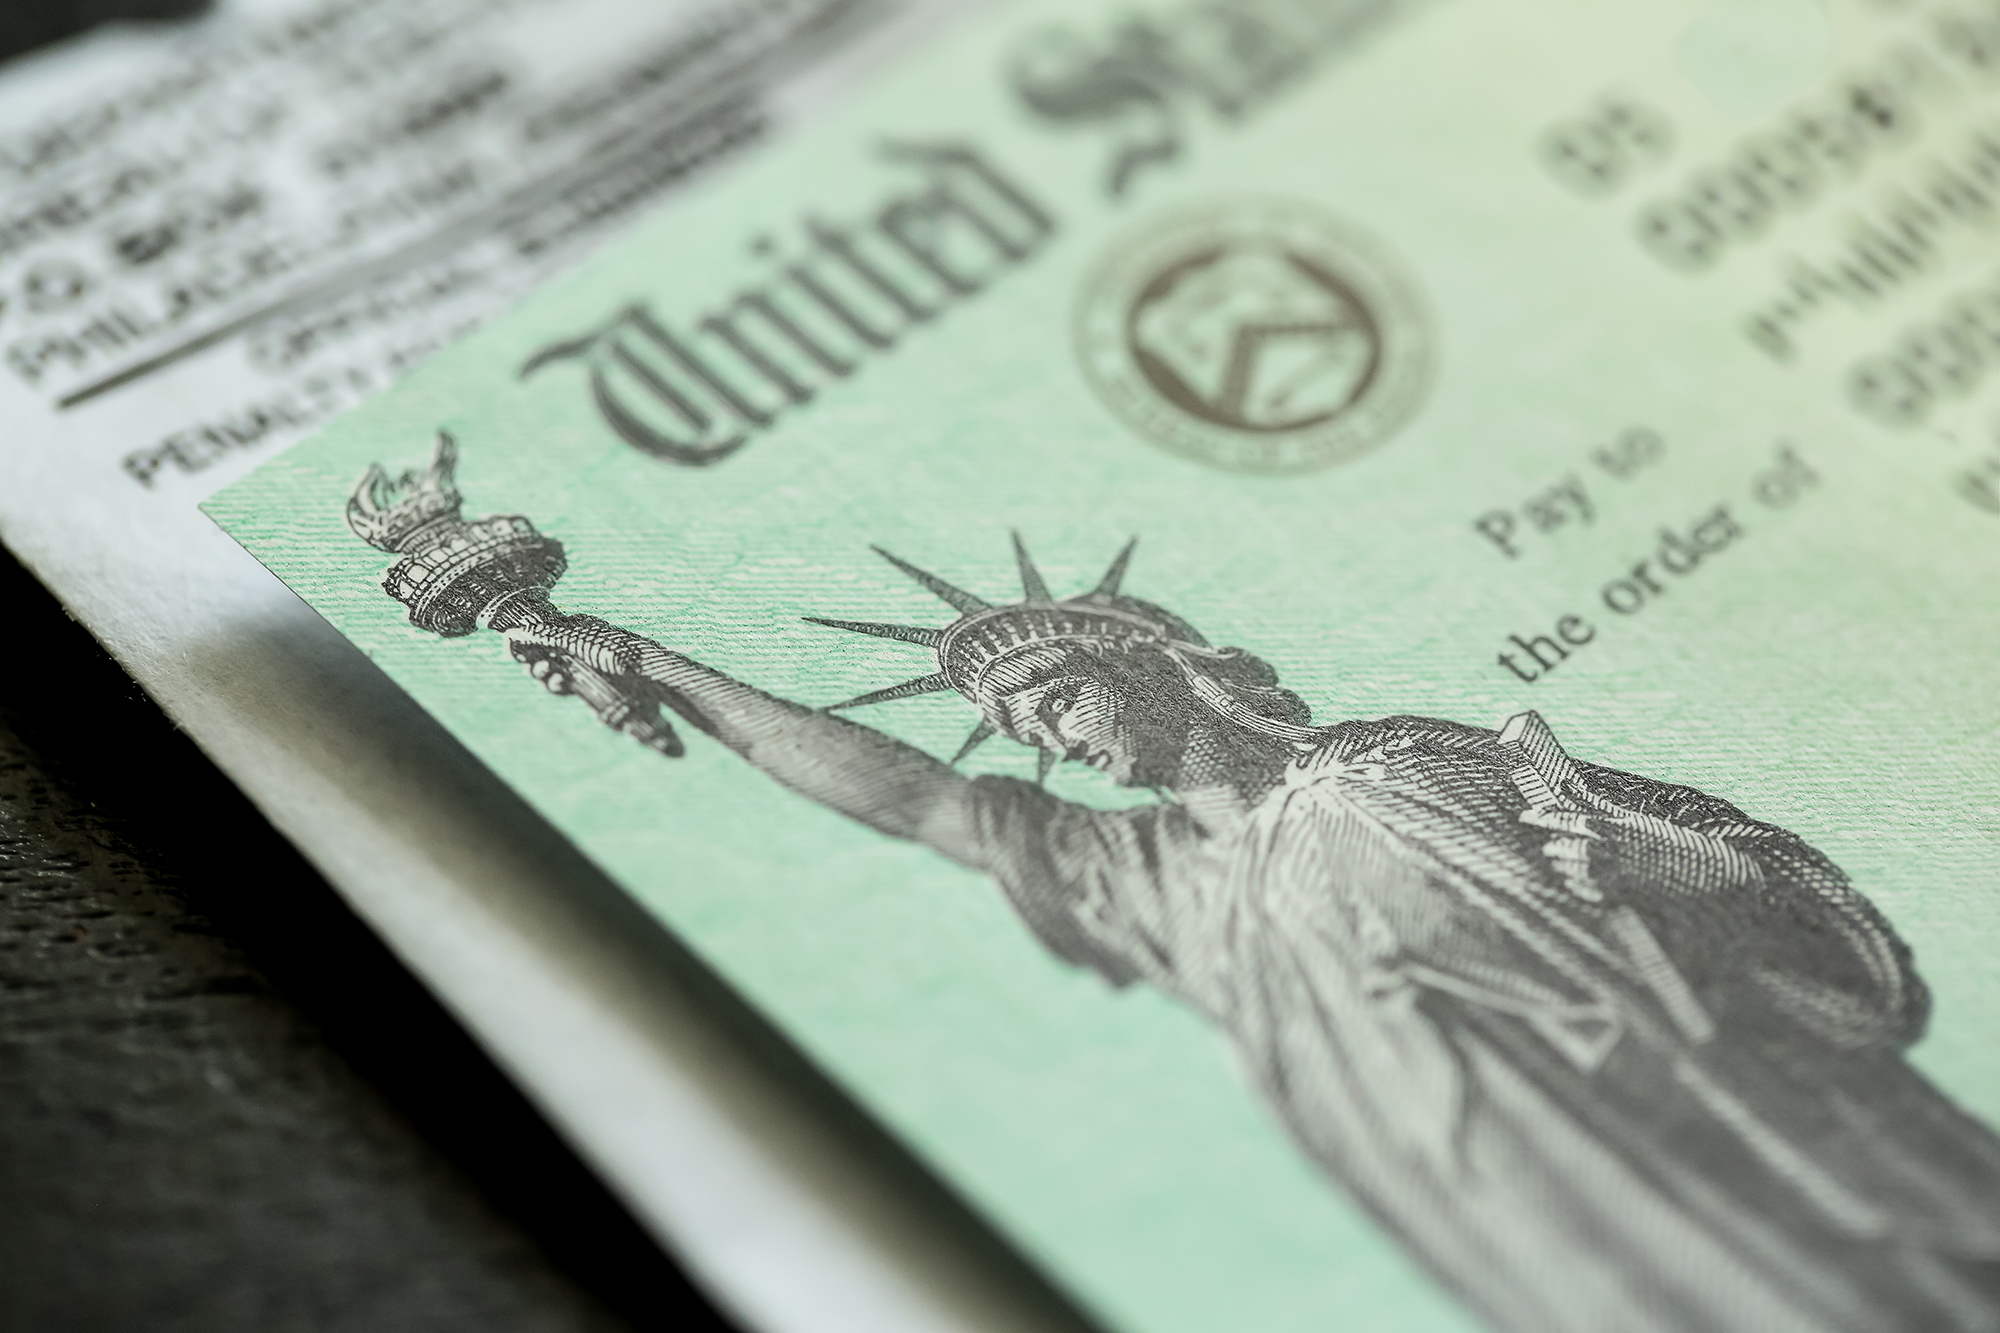 Stimulus payment adjustments are still going out to people whose 2020 taxes show they lost income